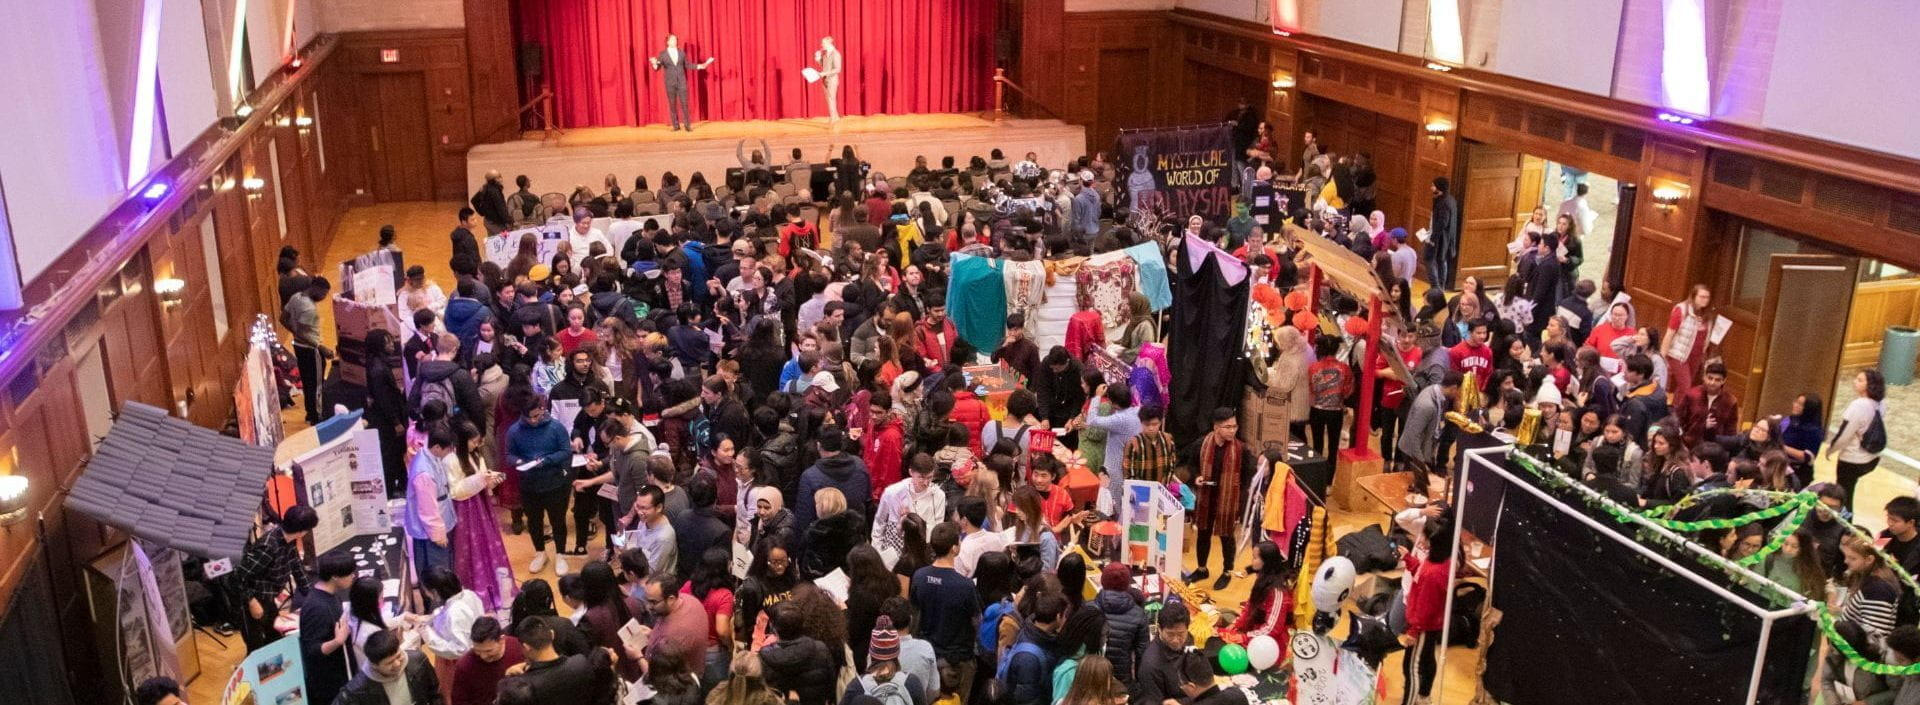 Students gathered for World's Fare on November 15th